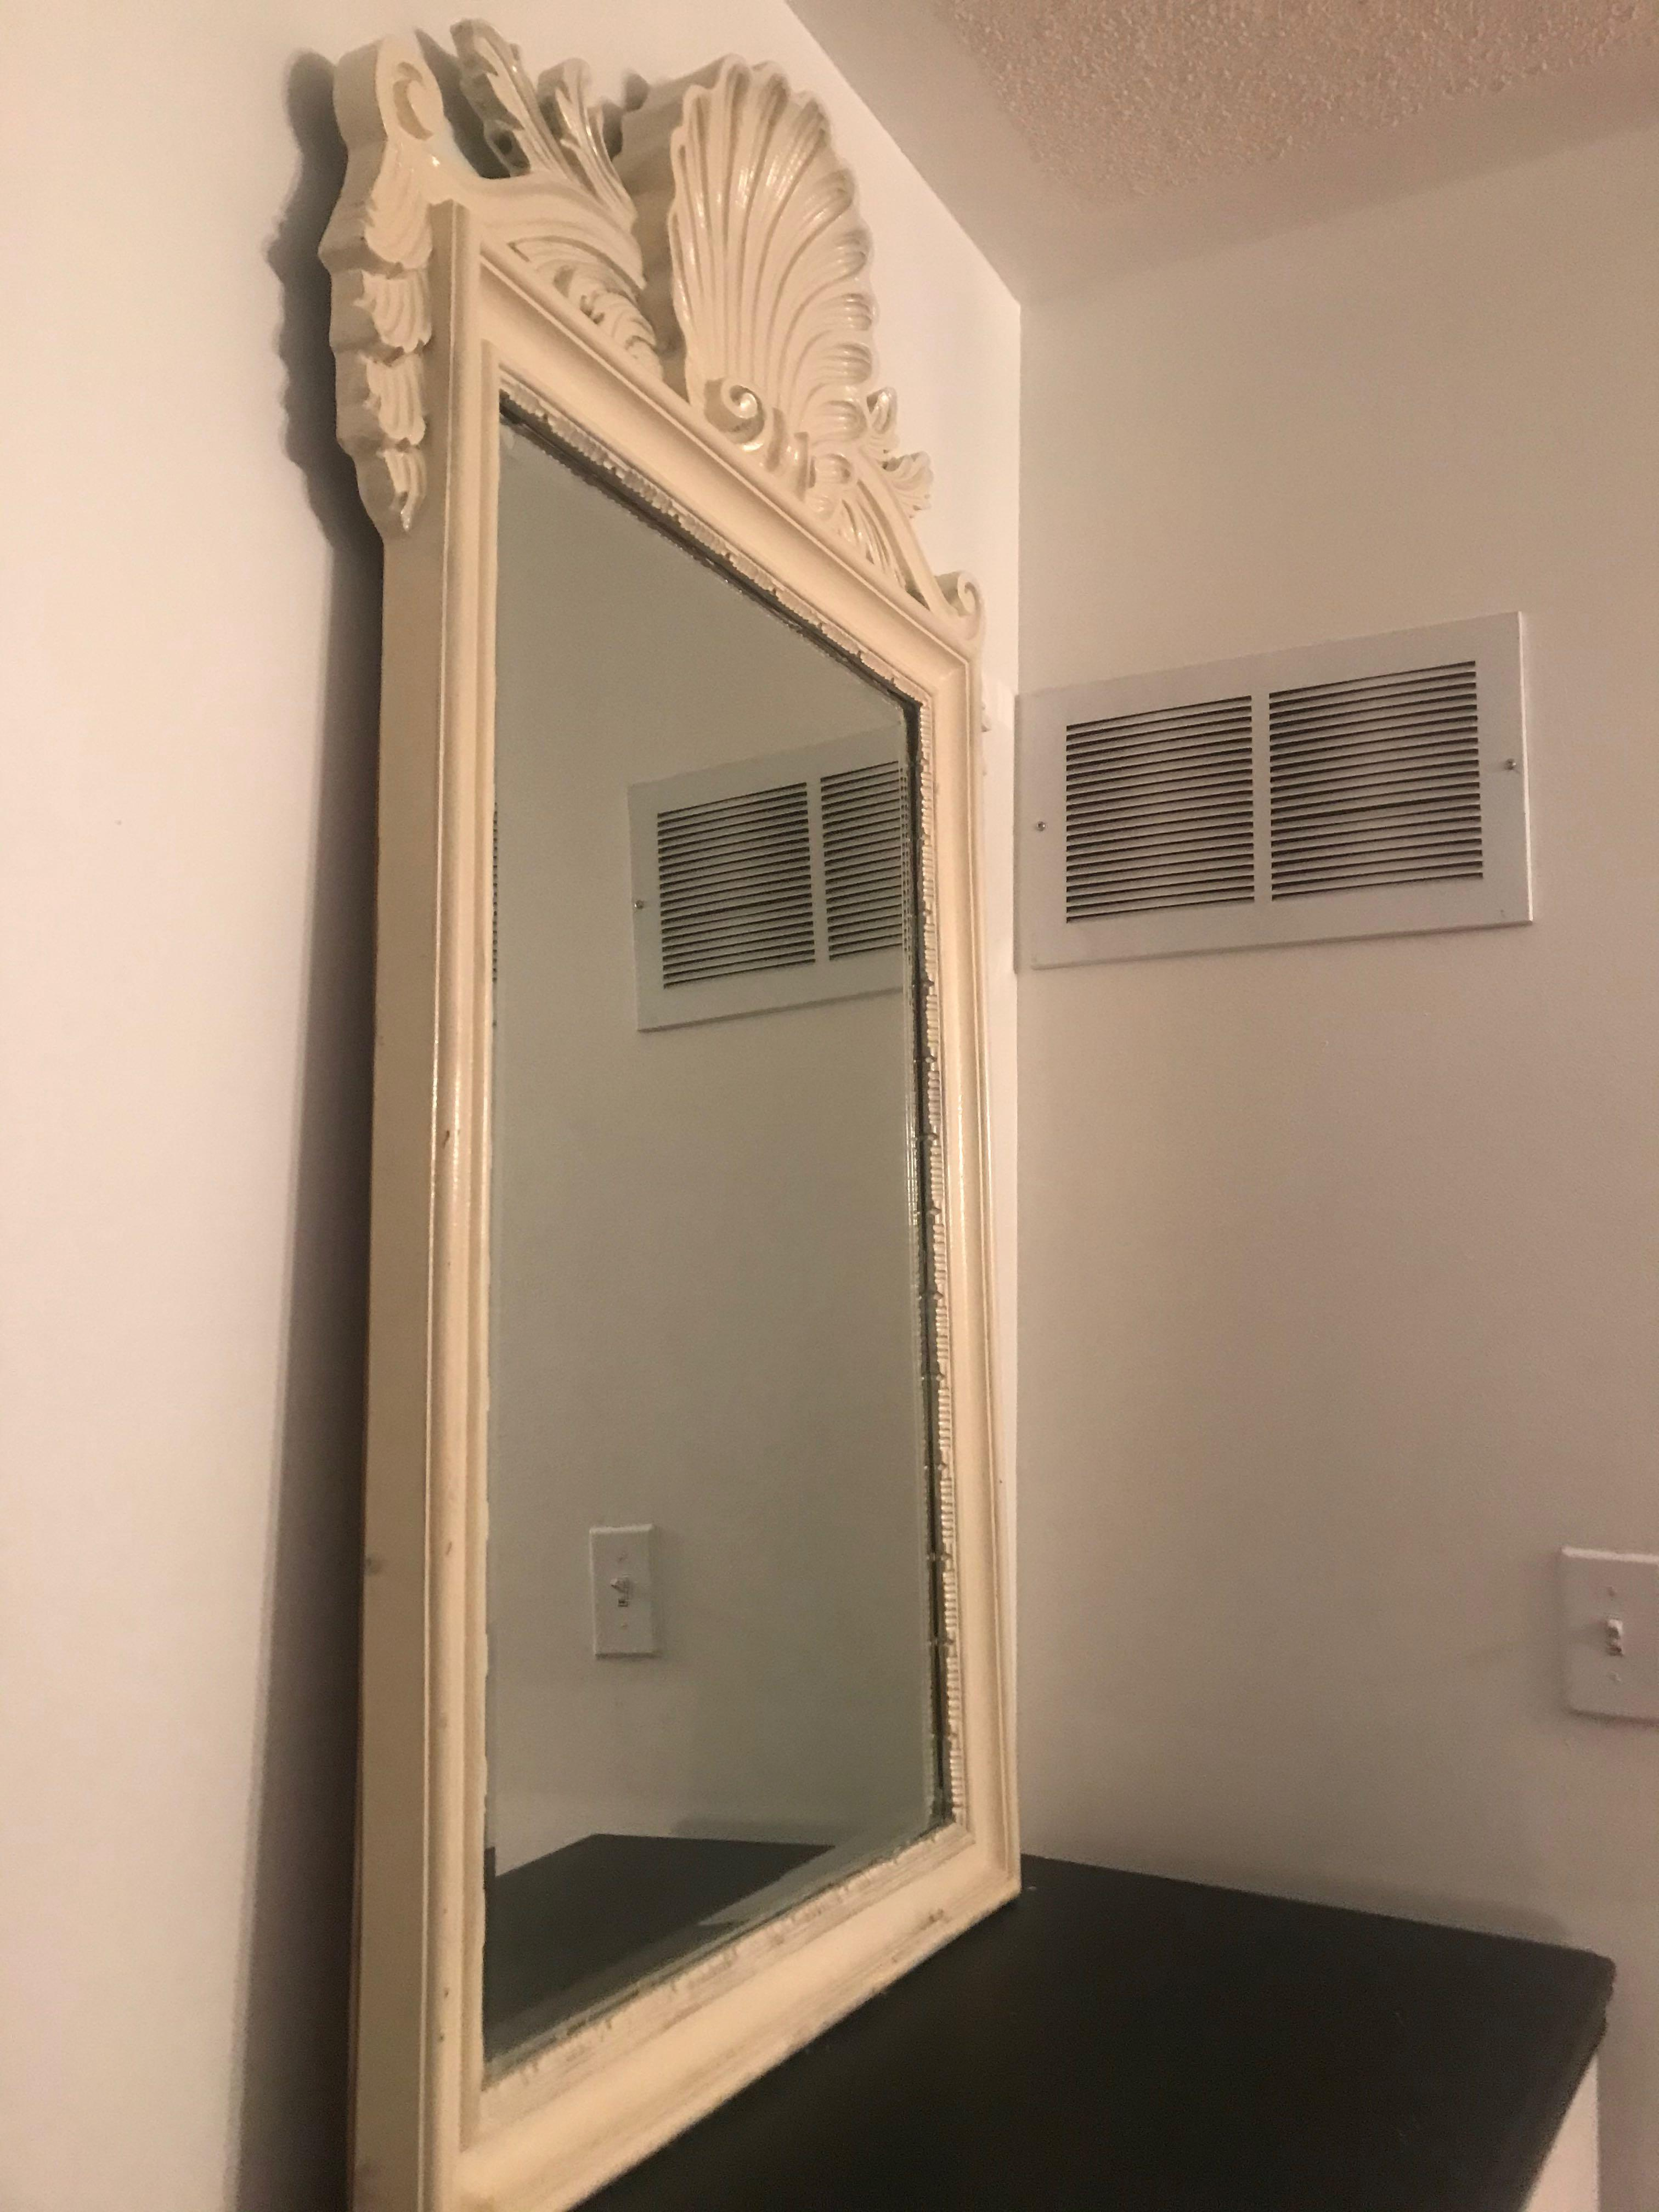 Ivory mirror for sell 50$